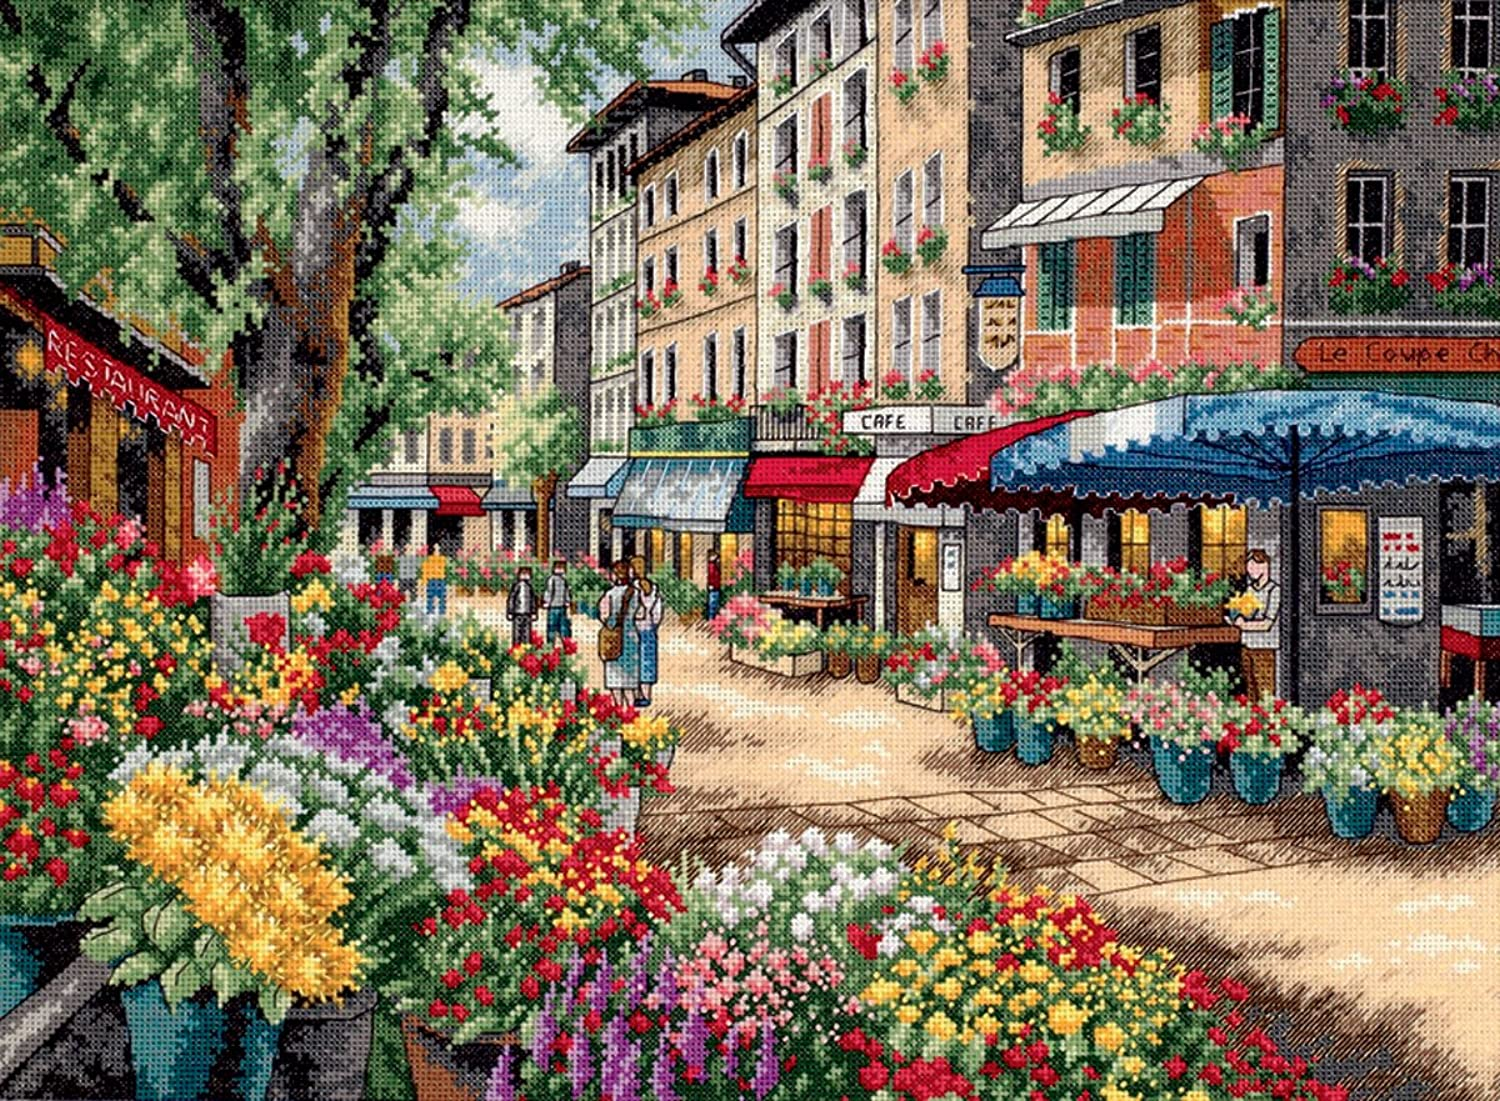 Dimensions Dimensions Dimensions D35256 Paris Market Picture Counted